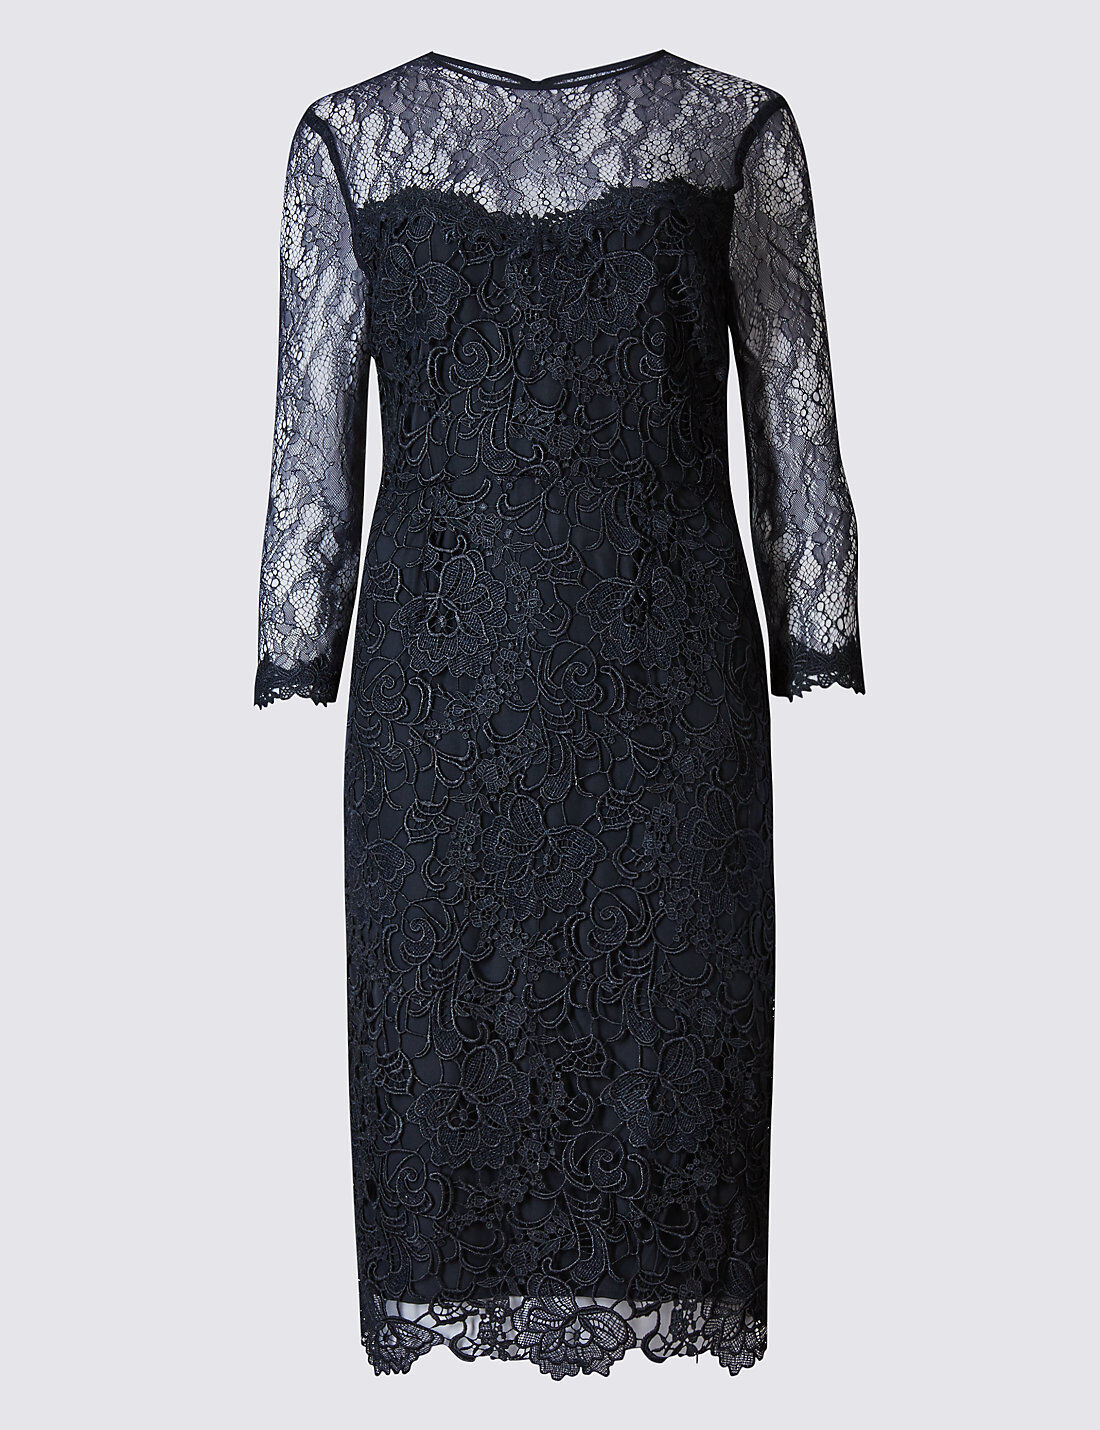 Marks and Spencer Lace 3 4 Sleeve Bodycon Kleid Navy Größe UK 18 LF076 BB 20